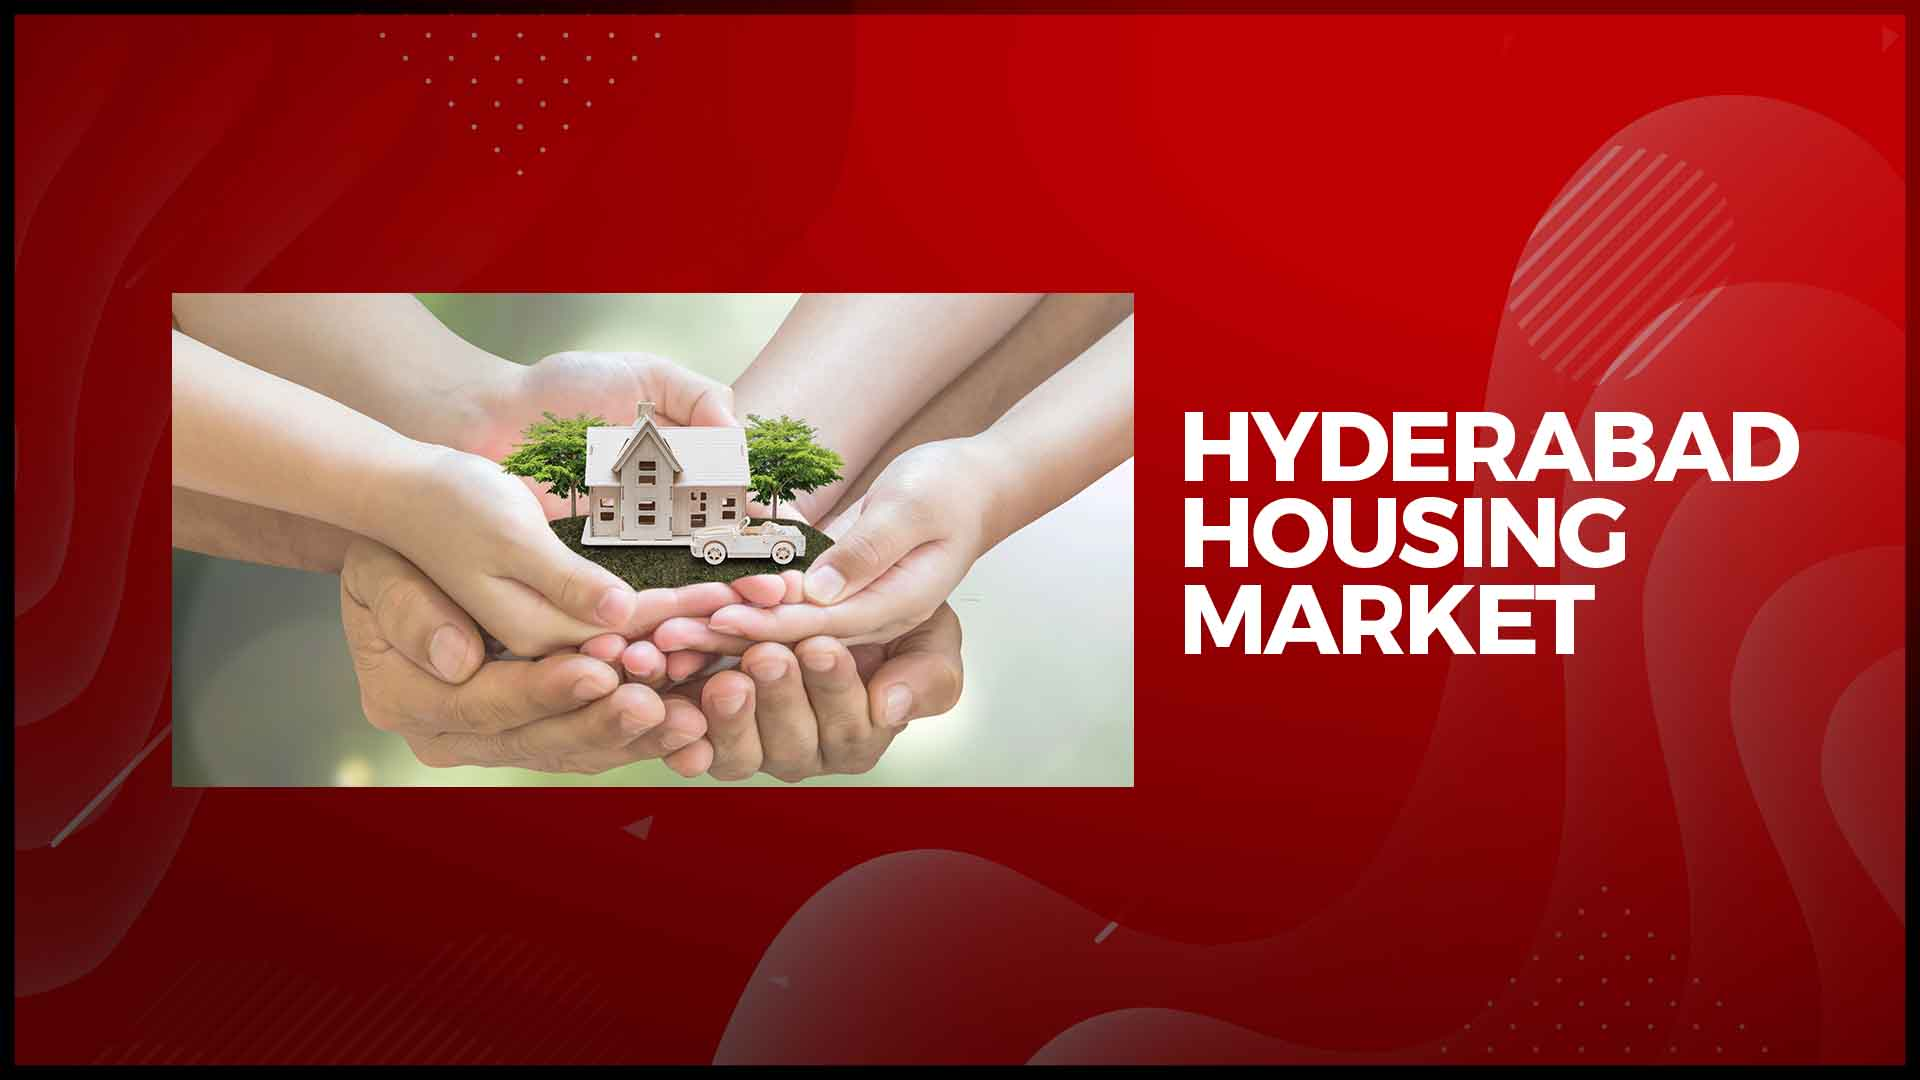 Housing Market In Hyderabad Rises By 30%